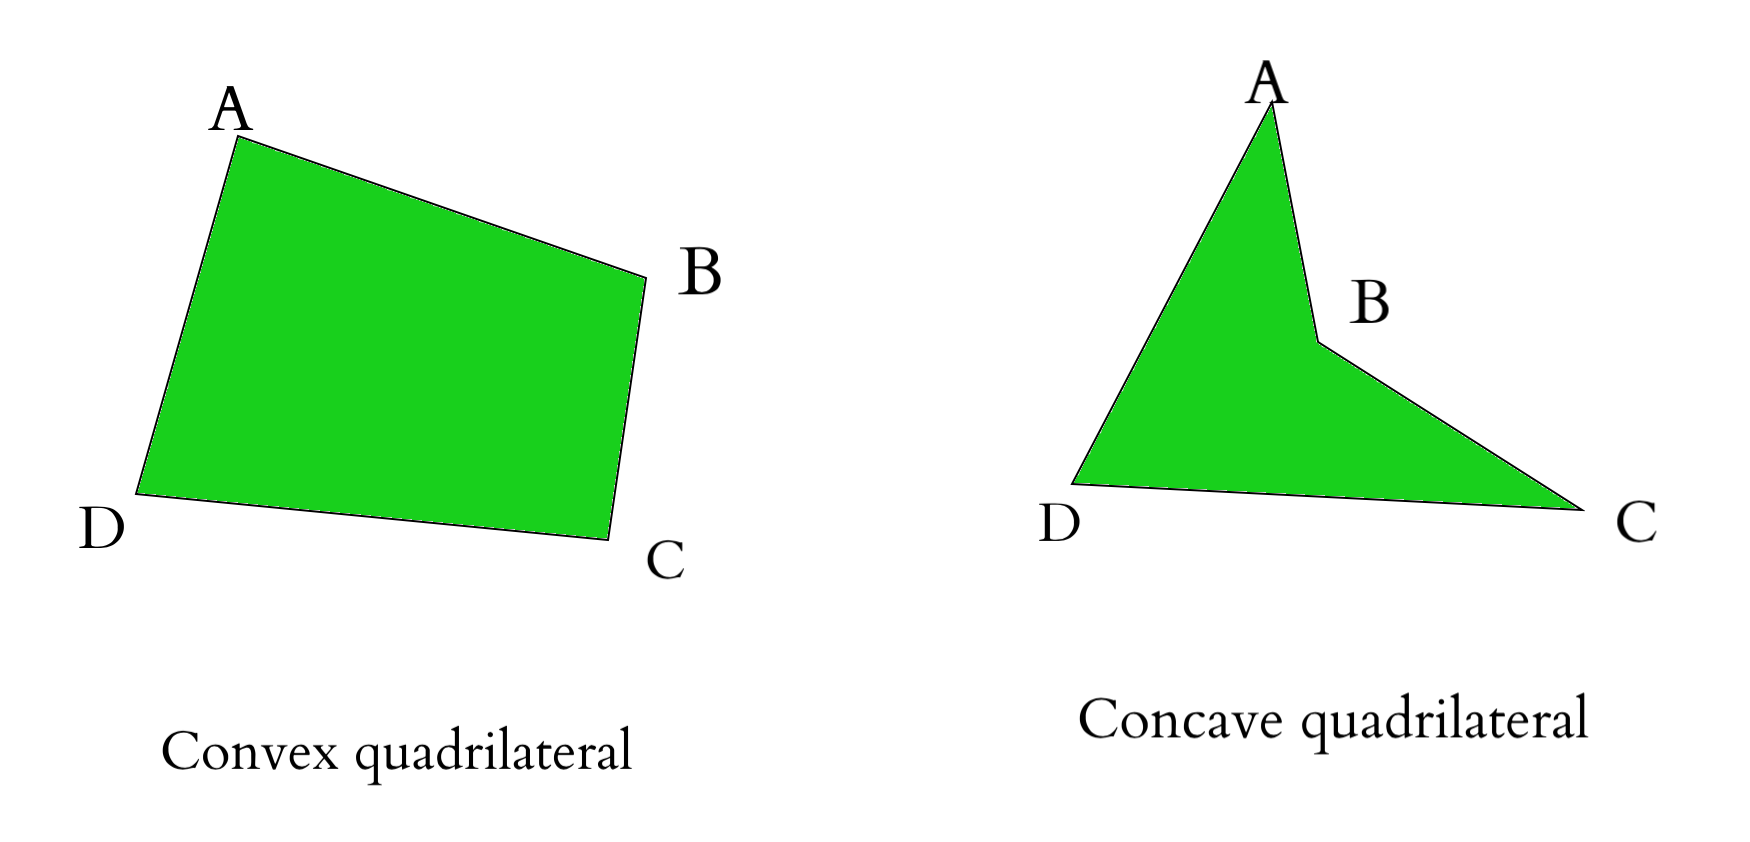 Number Of Quadrilaterals Possible From The Given Points